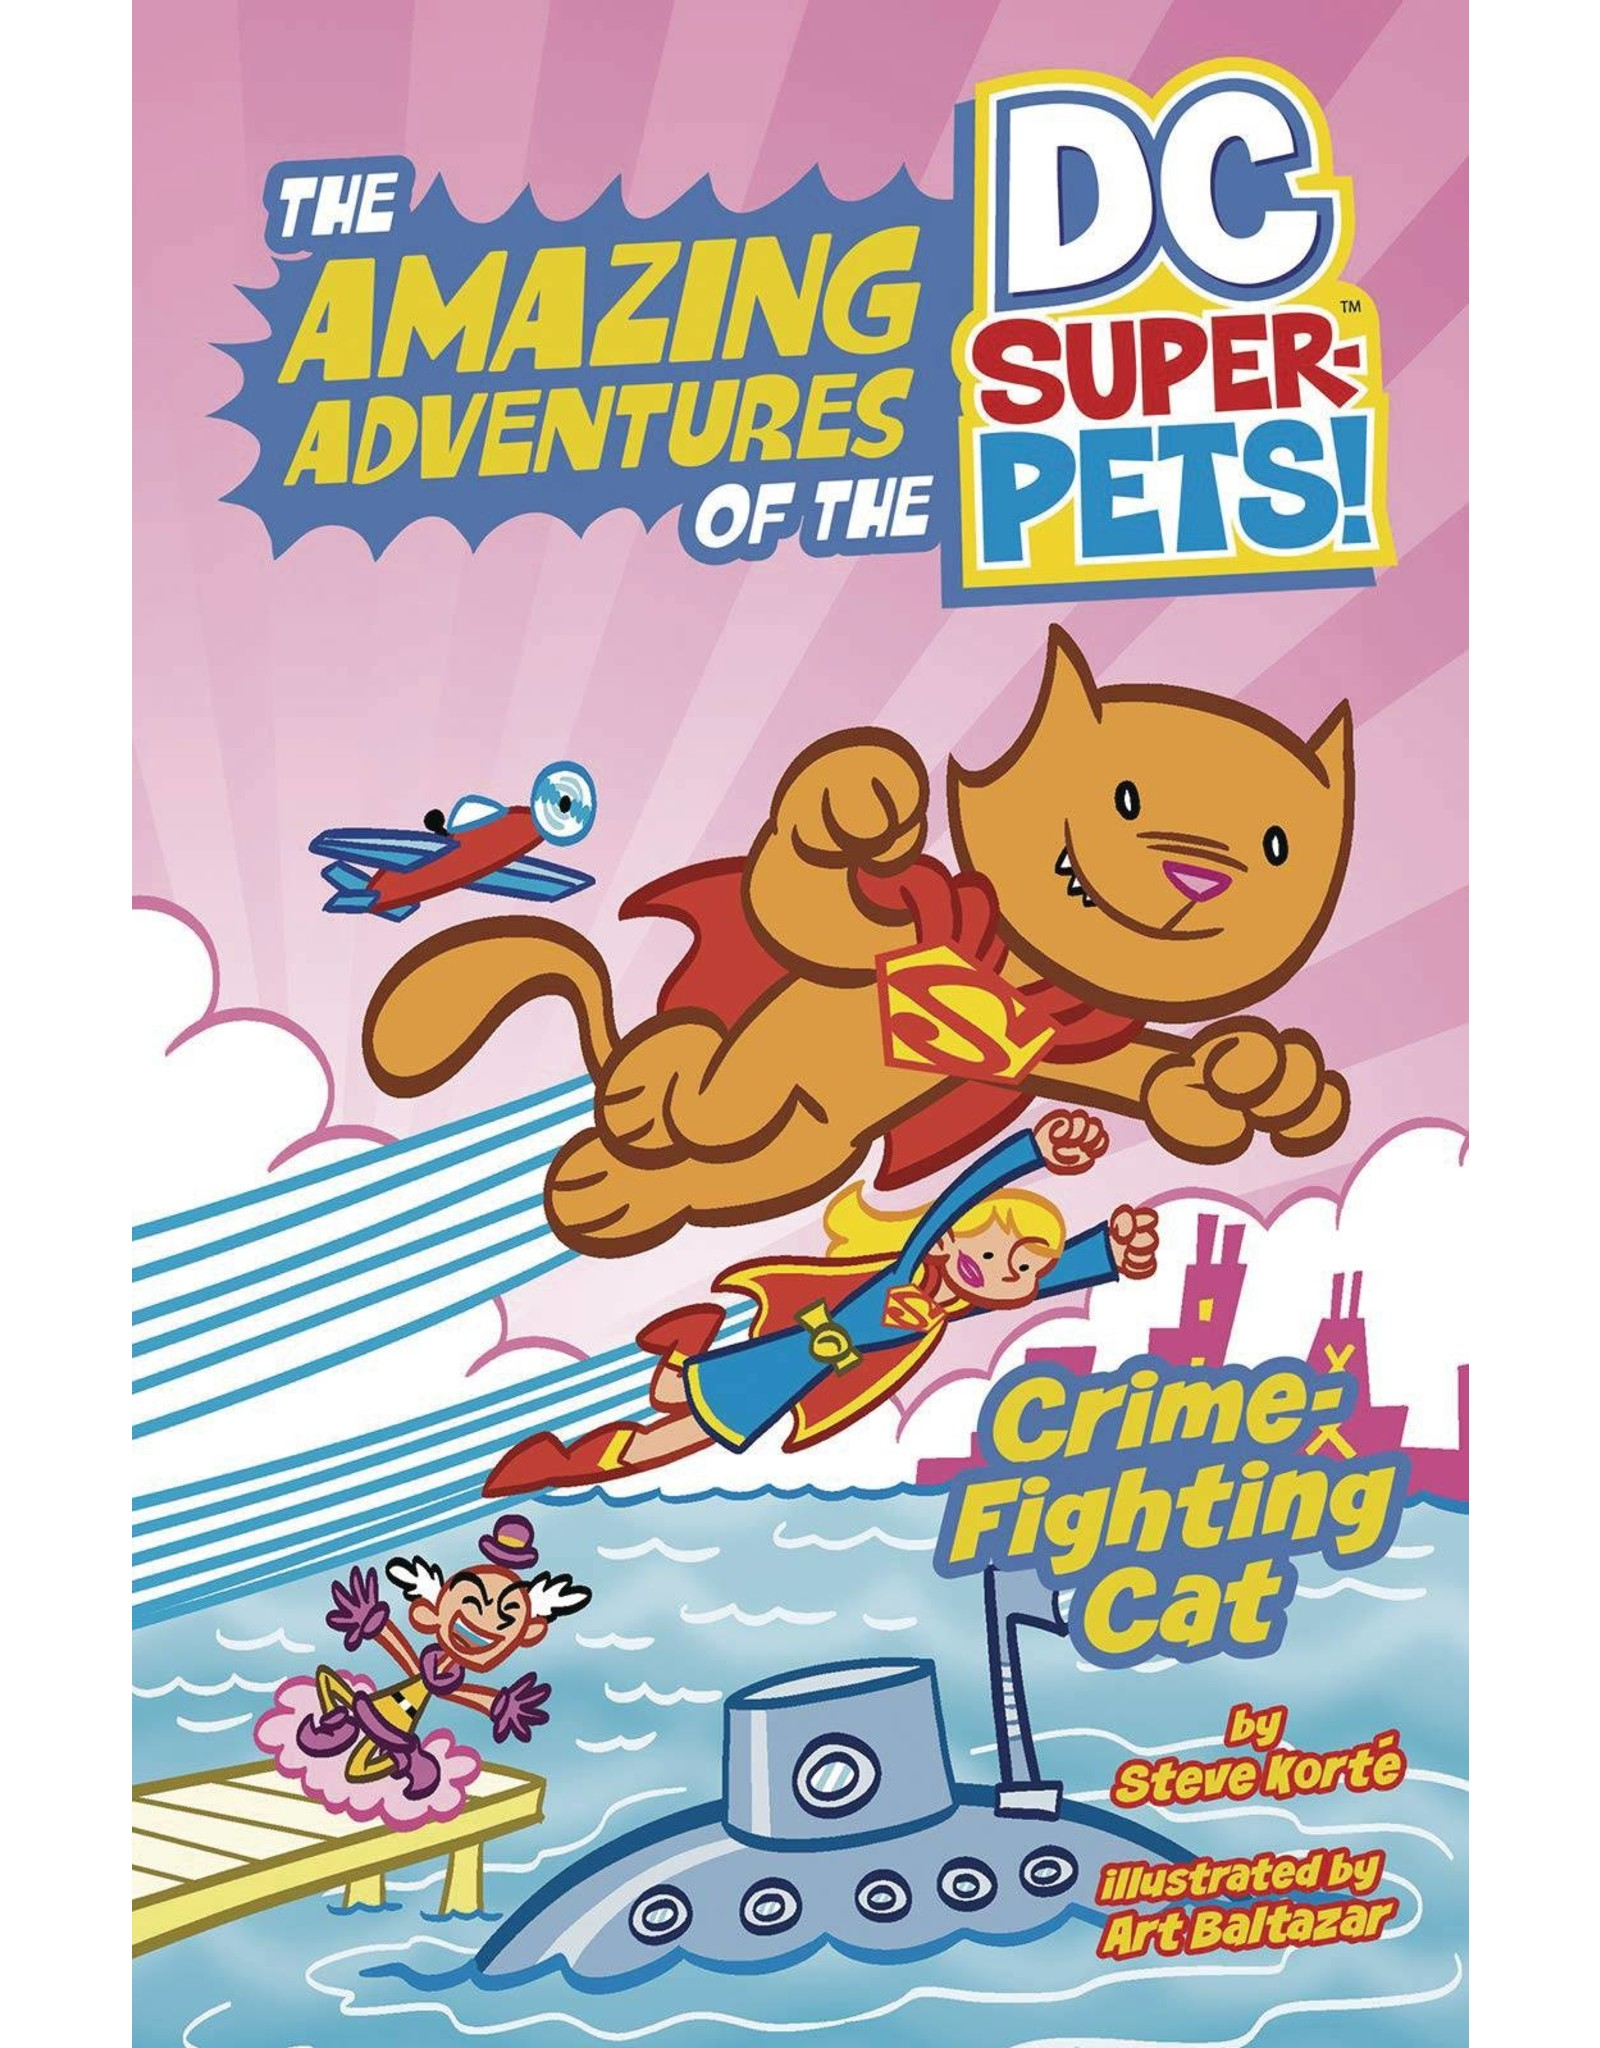 DC SUPER PETS YR TP CRIME FIGHTING CAT